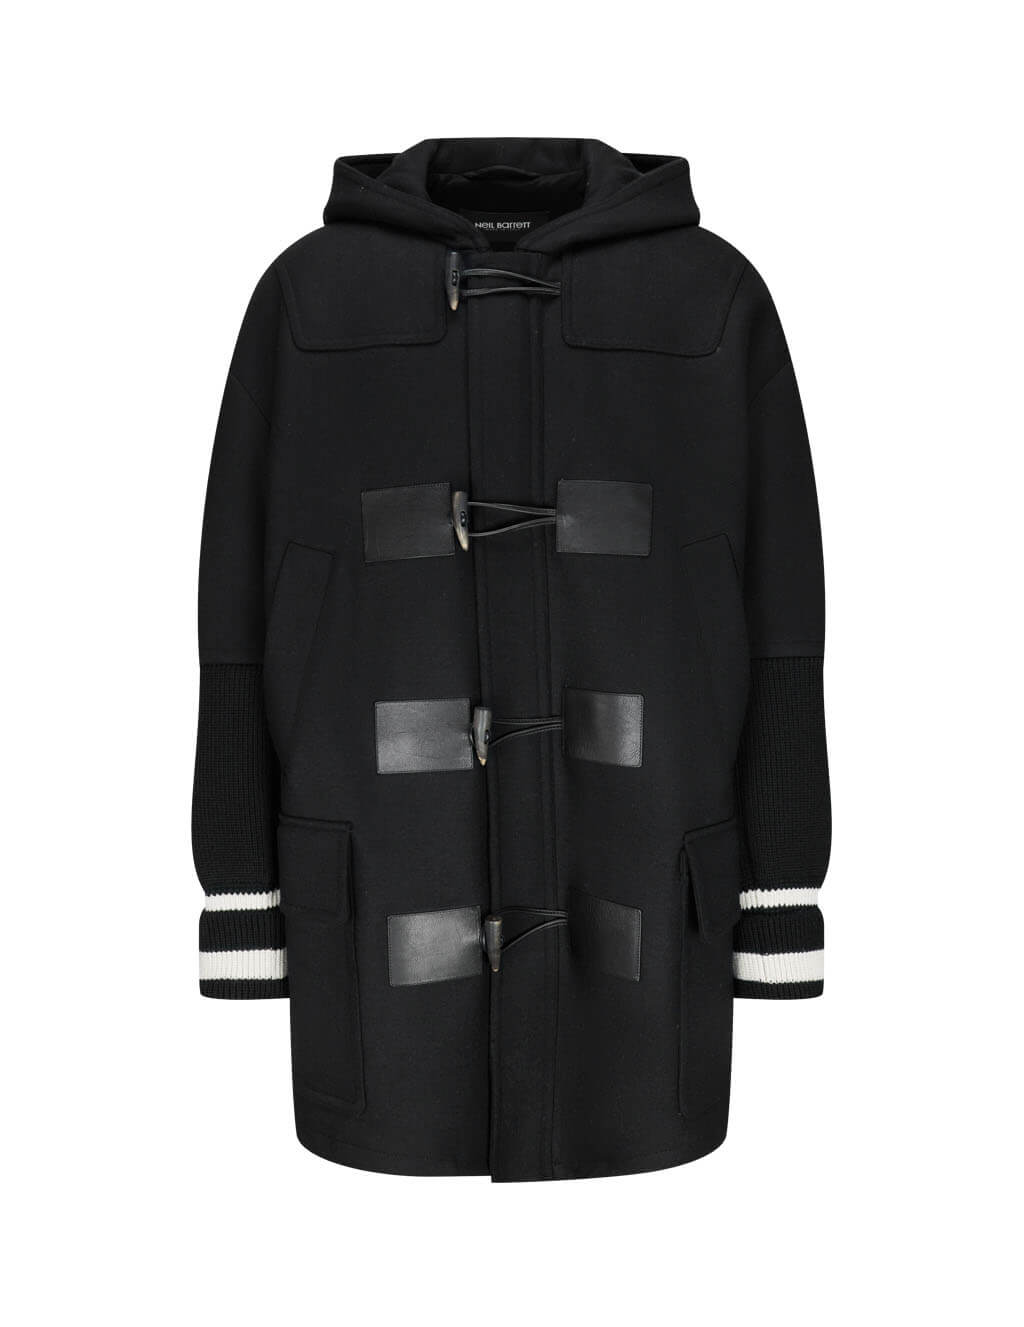 Neil Barrett Men's Black Hooded Duffle Coat BCA349CV-P145C 514